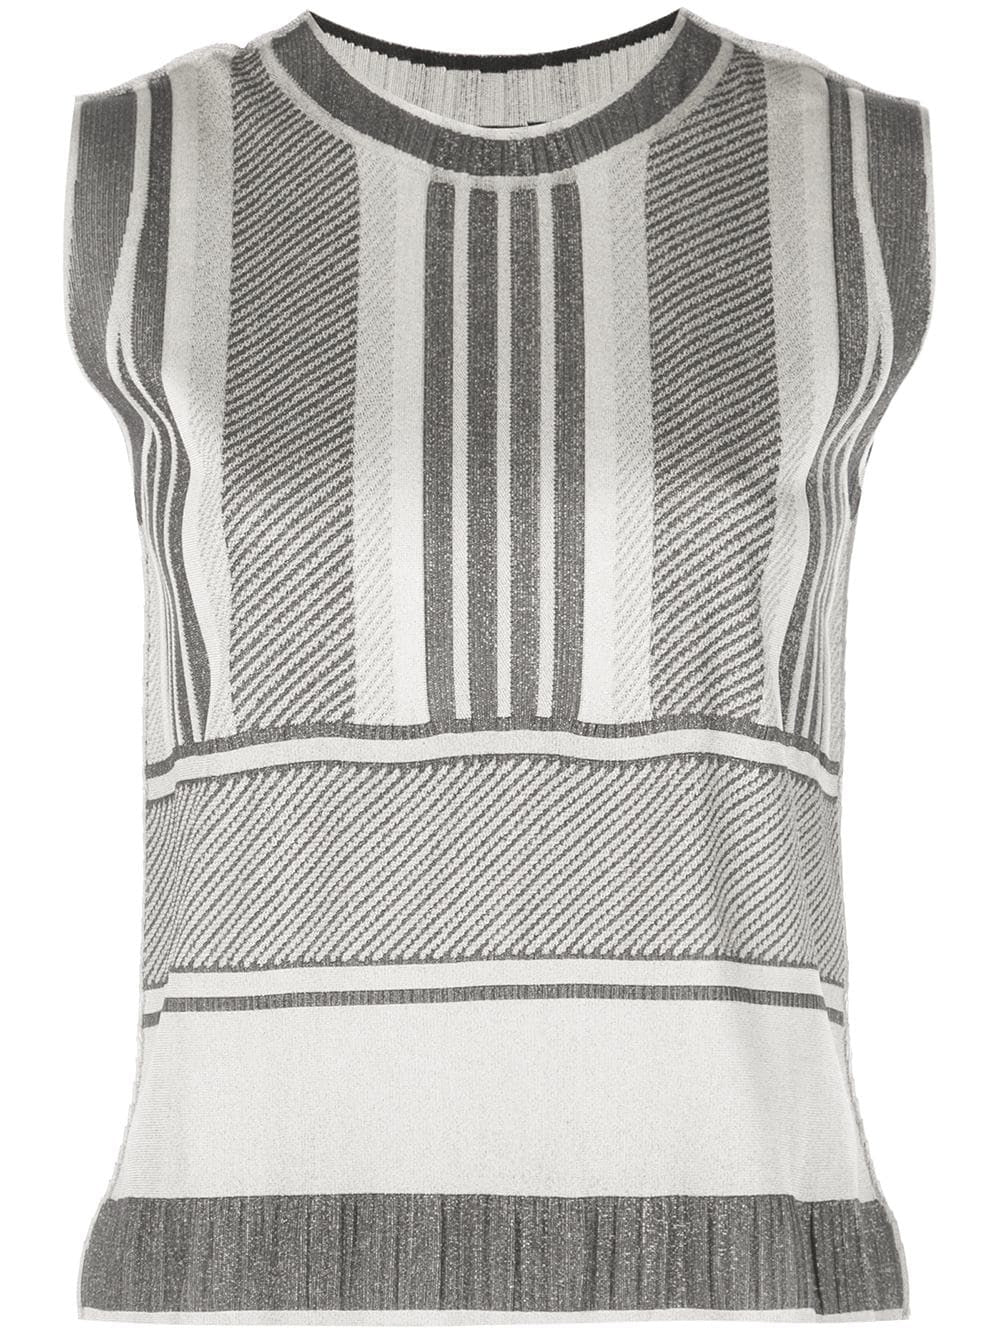 A-POC STRIPE SLEEVELESS TOP